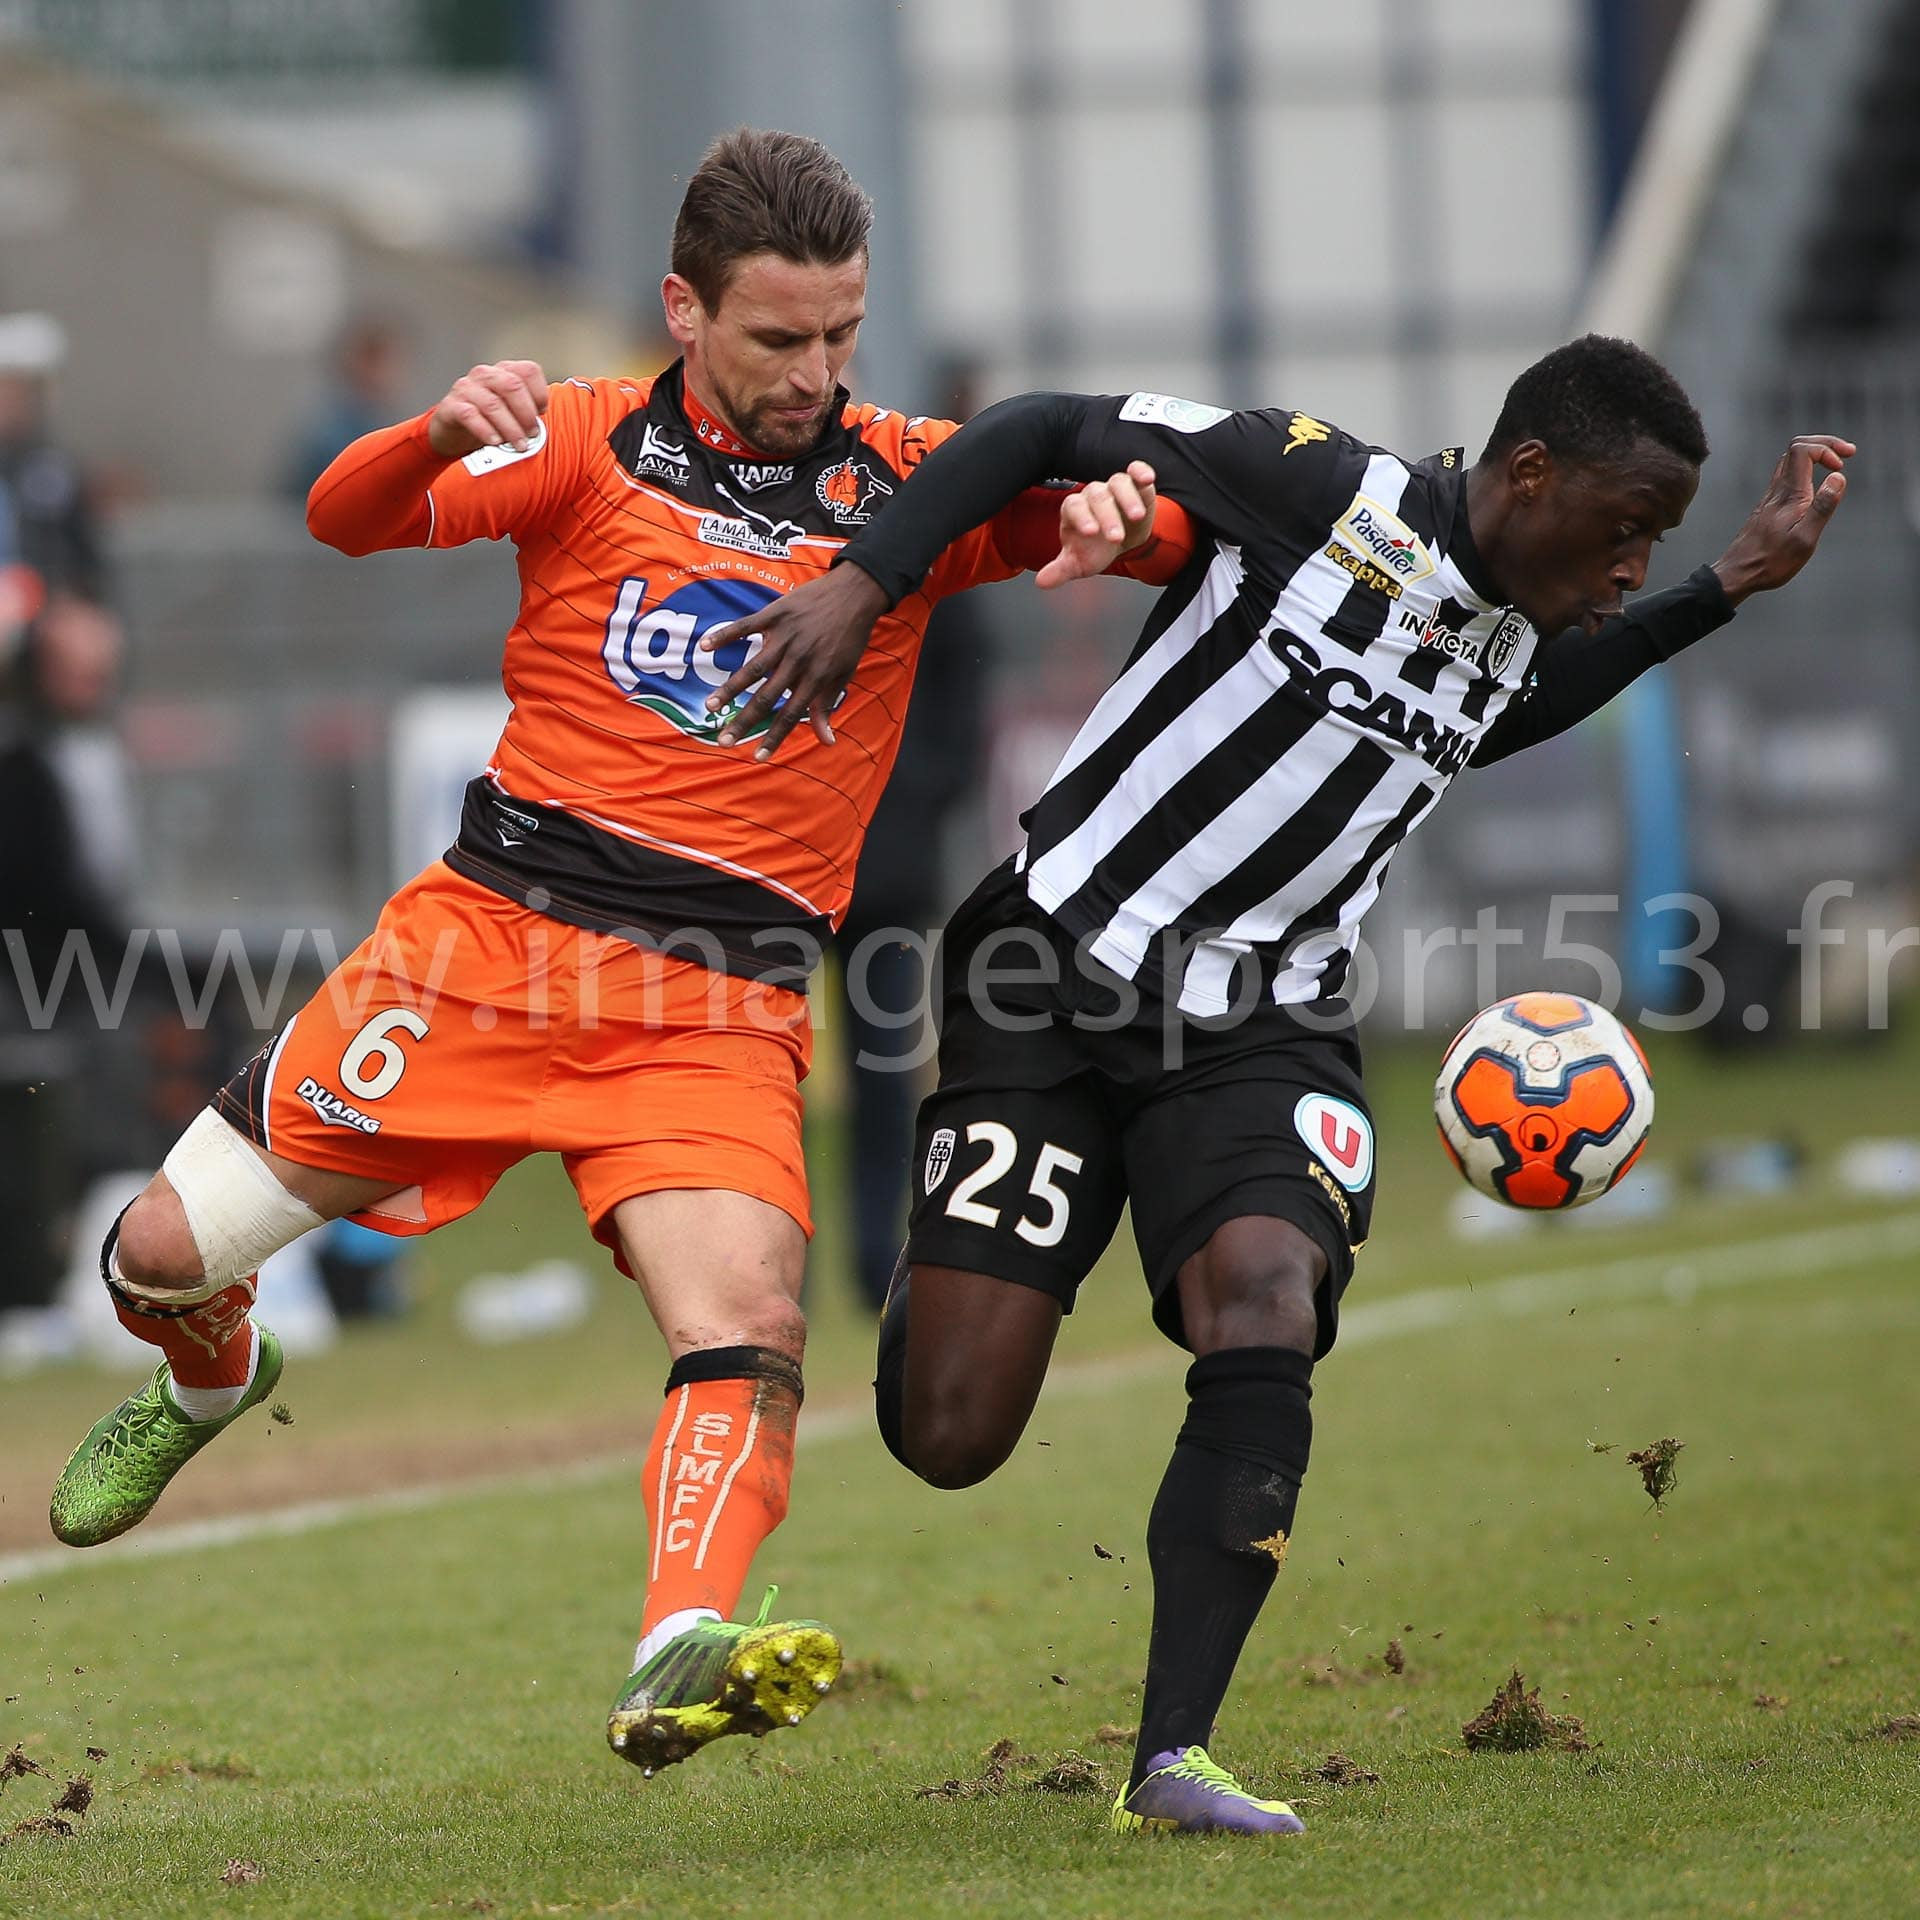 Angers SCO-Stade Lavallois